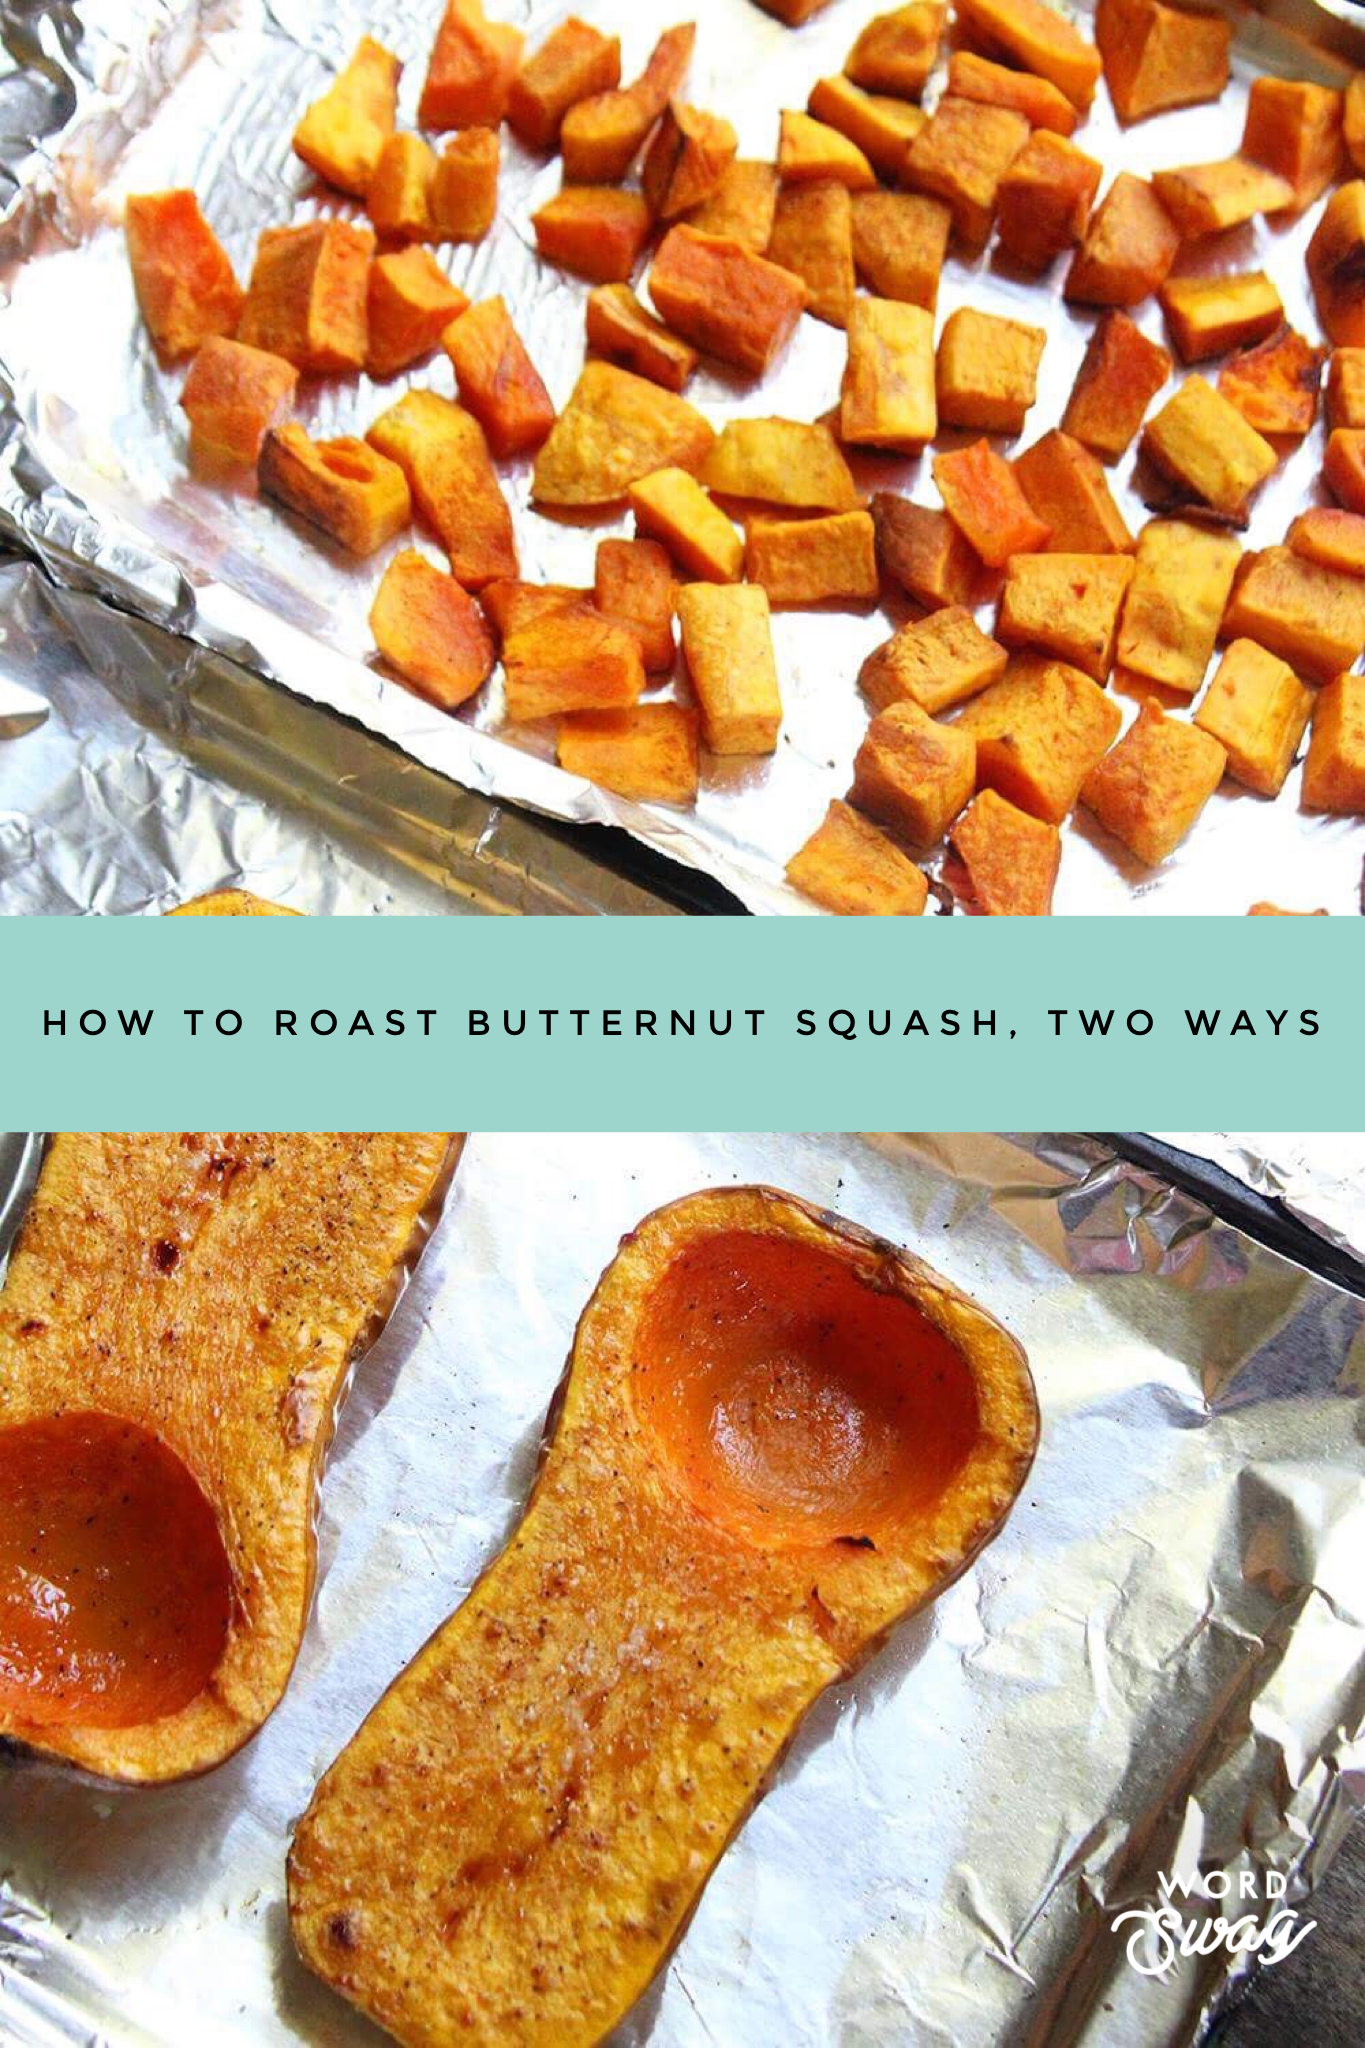 How to Roast Butternut Squash Two Ways